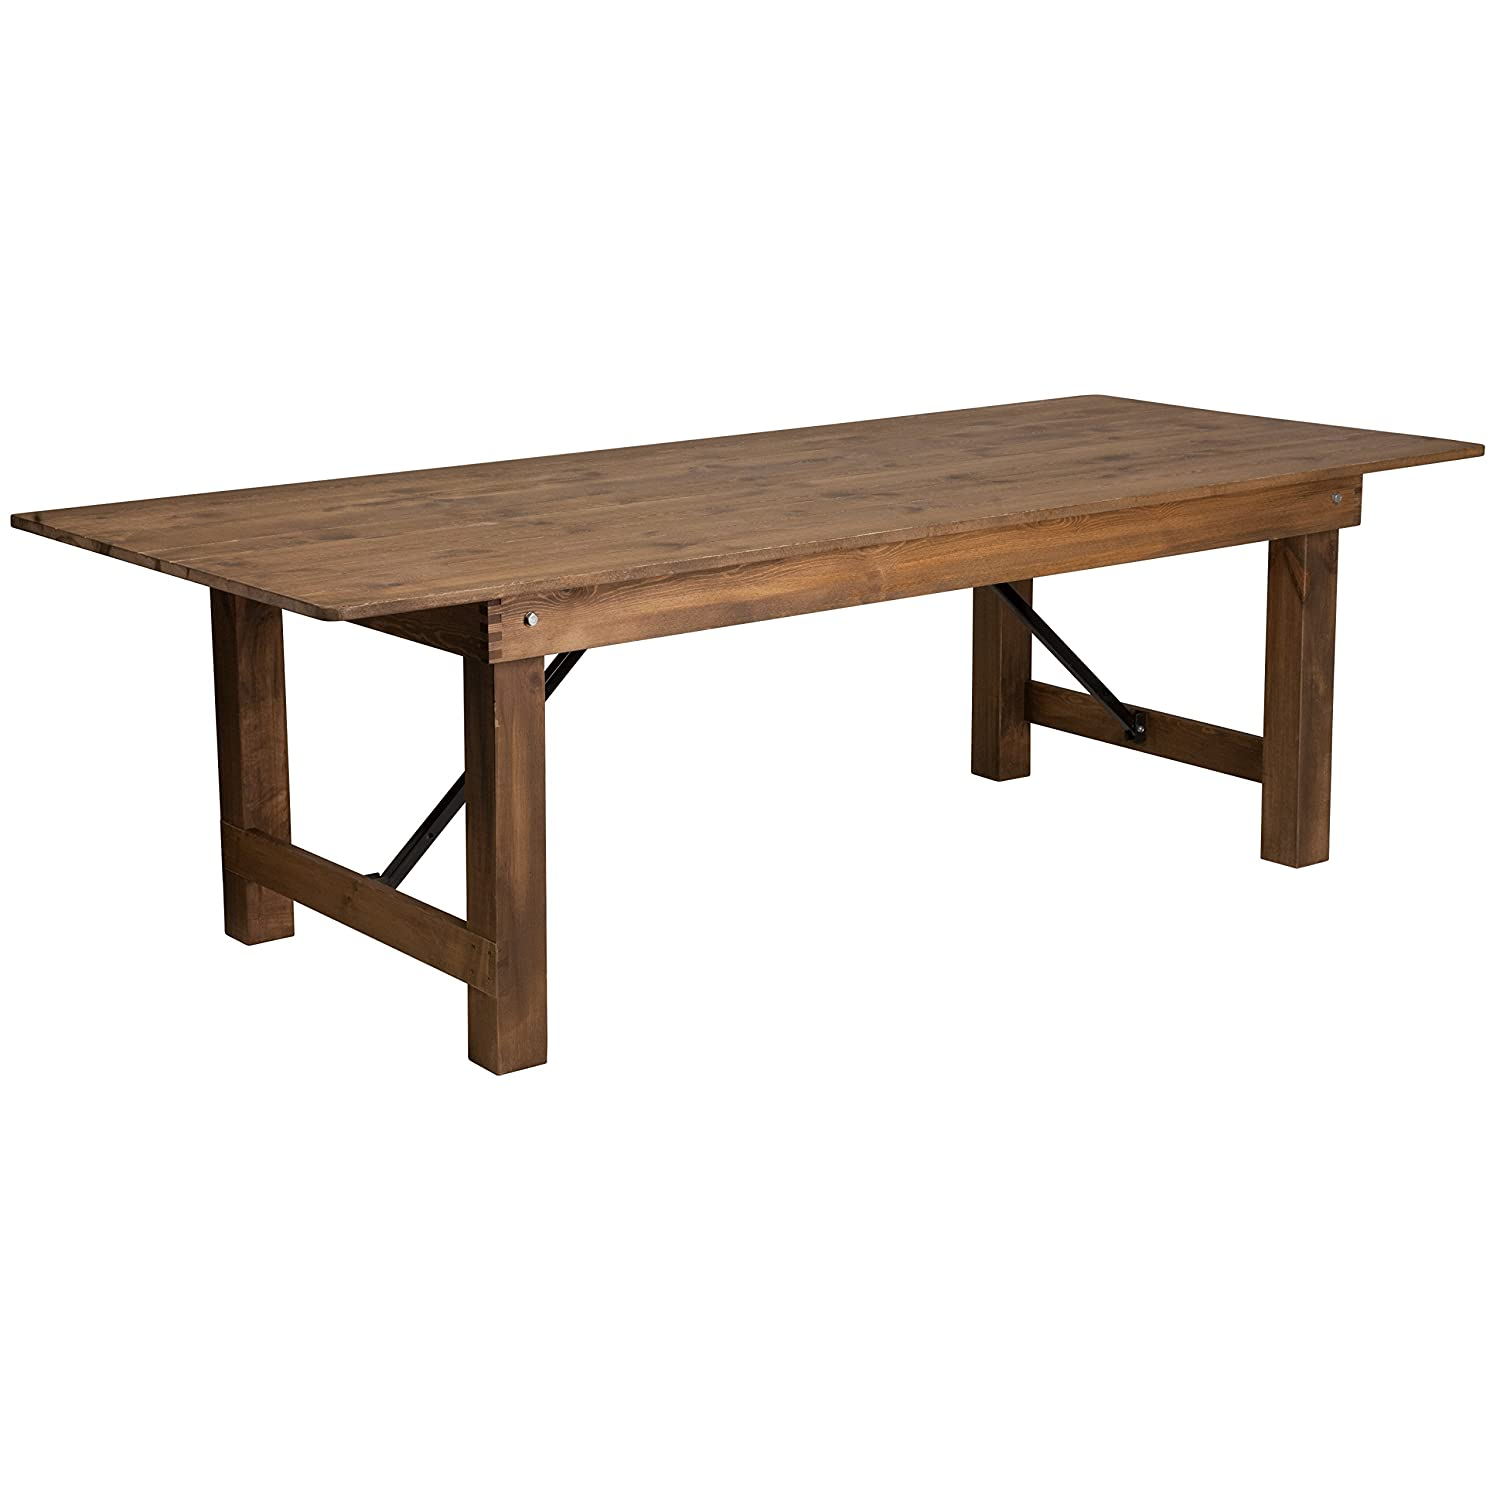 Amazon.com - Flash Furniture HERCULES Series 8' x 40'' Antique Rustic Solid  Pine Folding Farm Table - Tables - Amazon.com - Flash Furniture HERCULES Series 8' X 40'' Antique